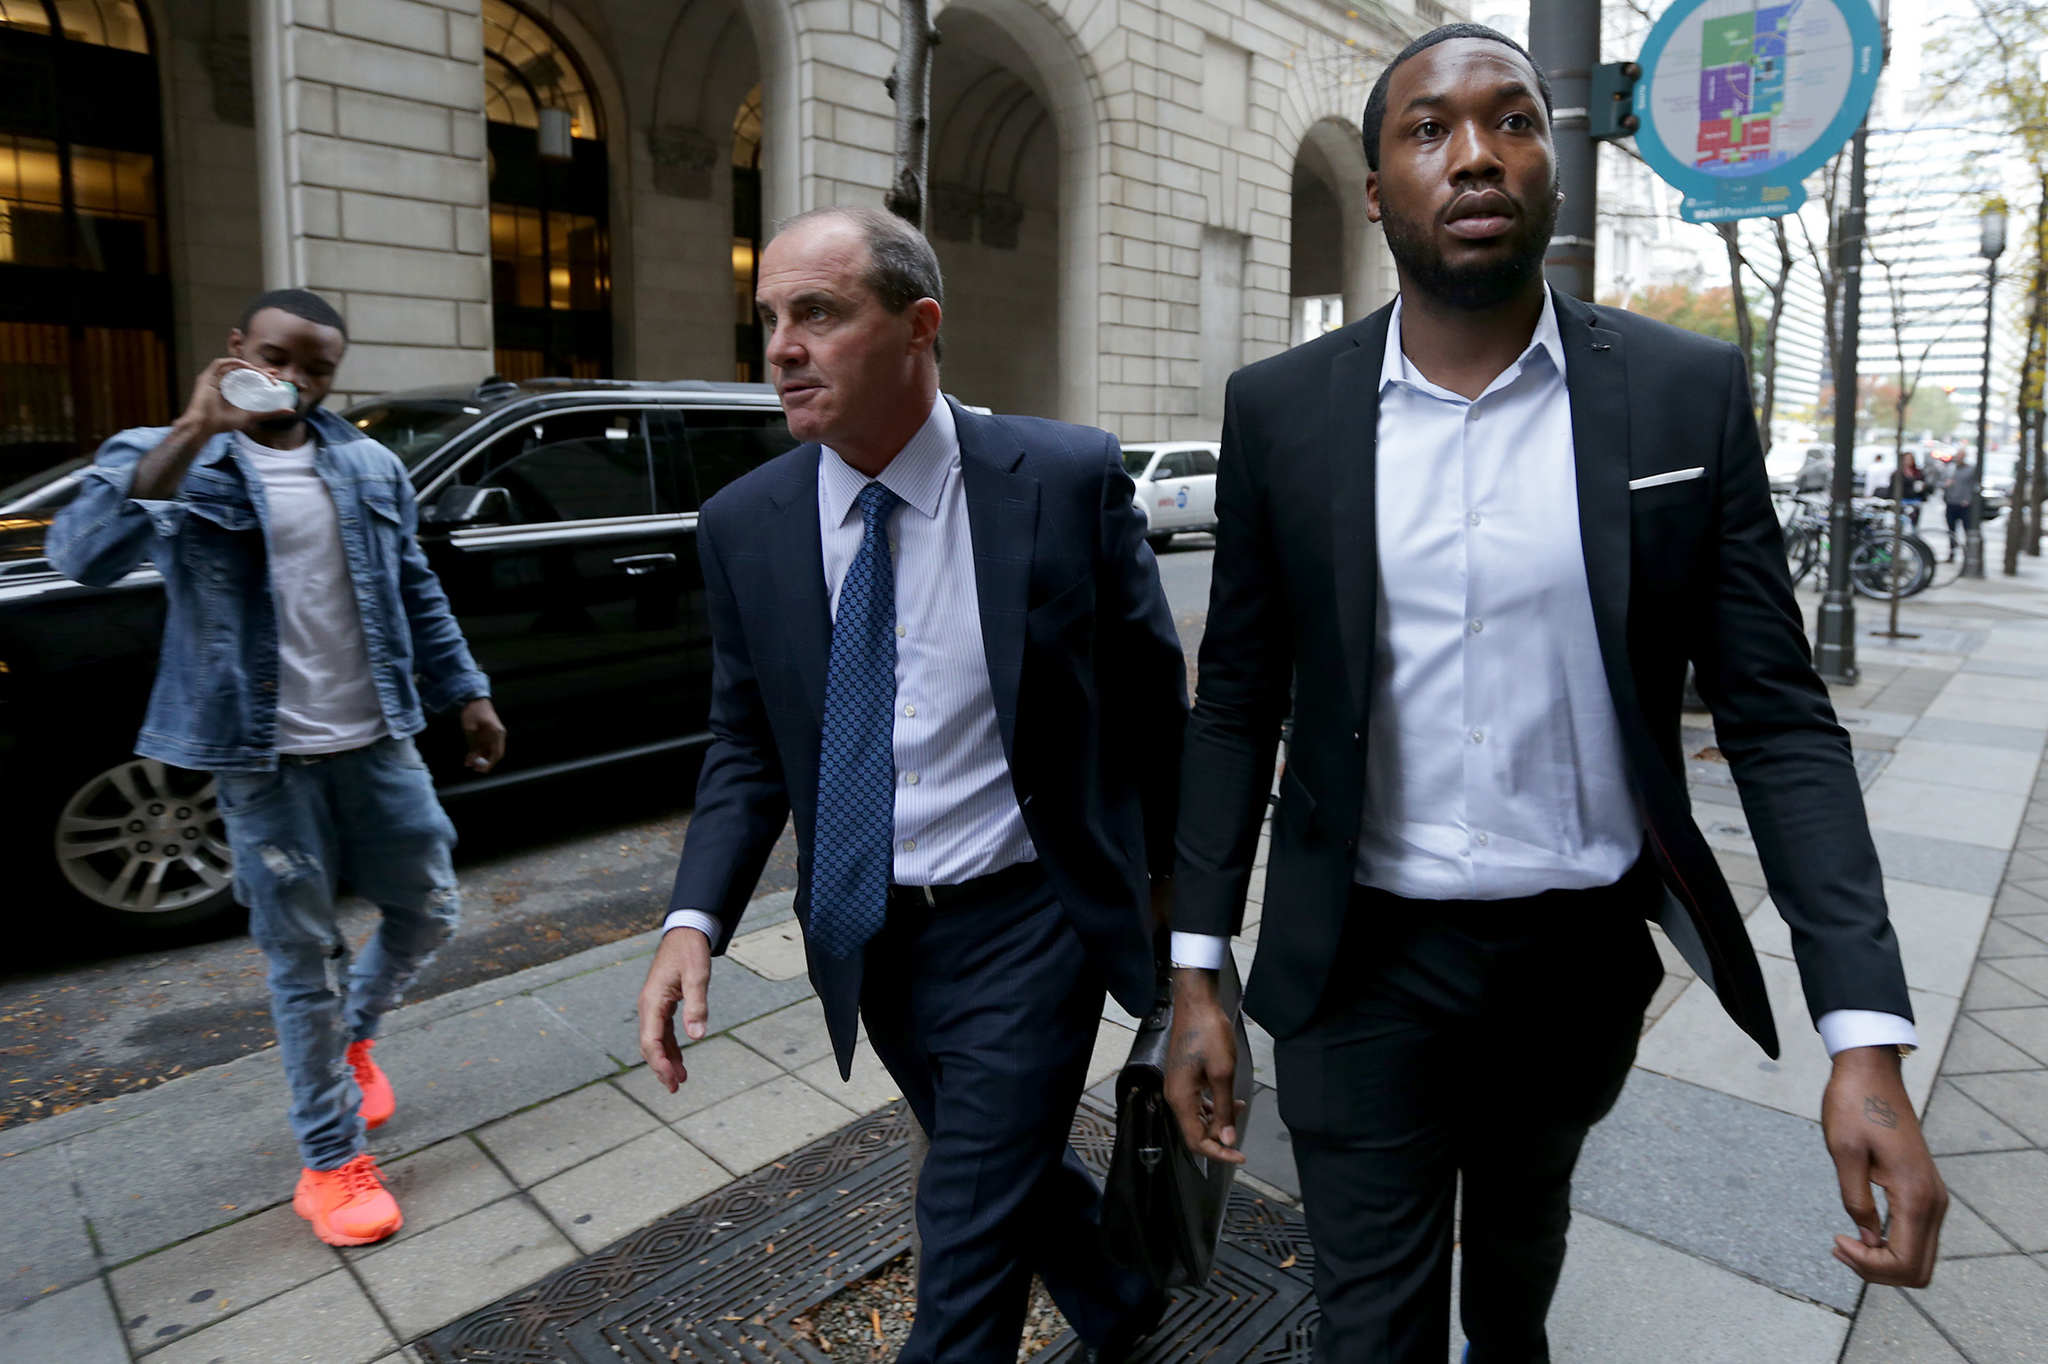 Rapper Meek Mill, right, arrives the Criminal Justice Center with his lawyer Brian McMonagle, center, in Philadelphia, PA on November 6, 2017.